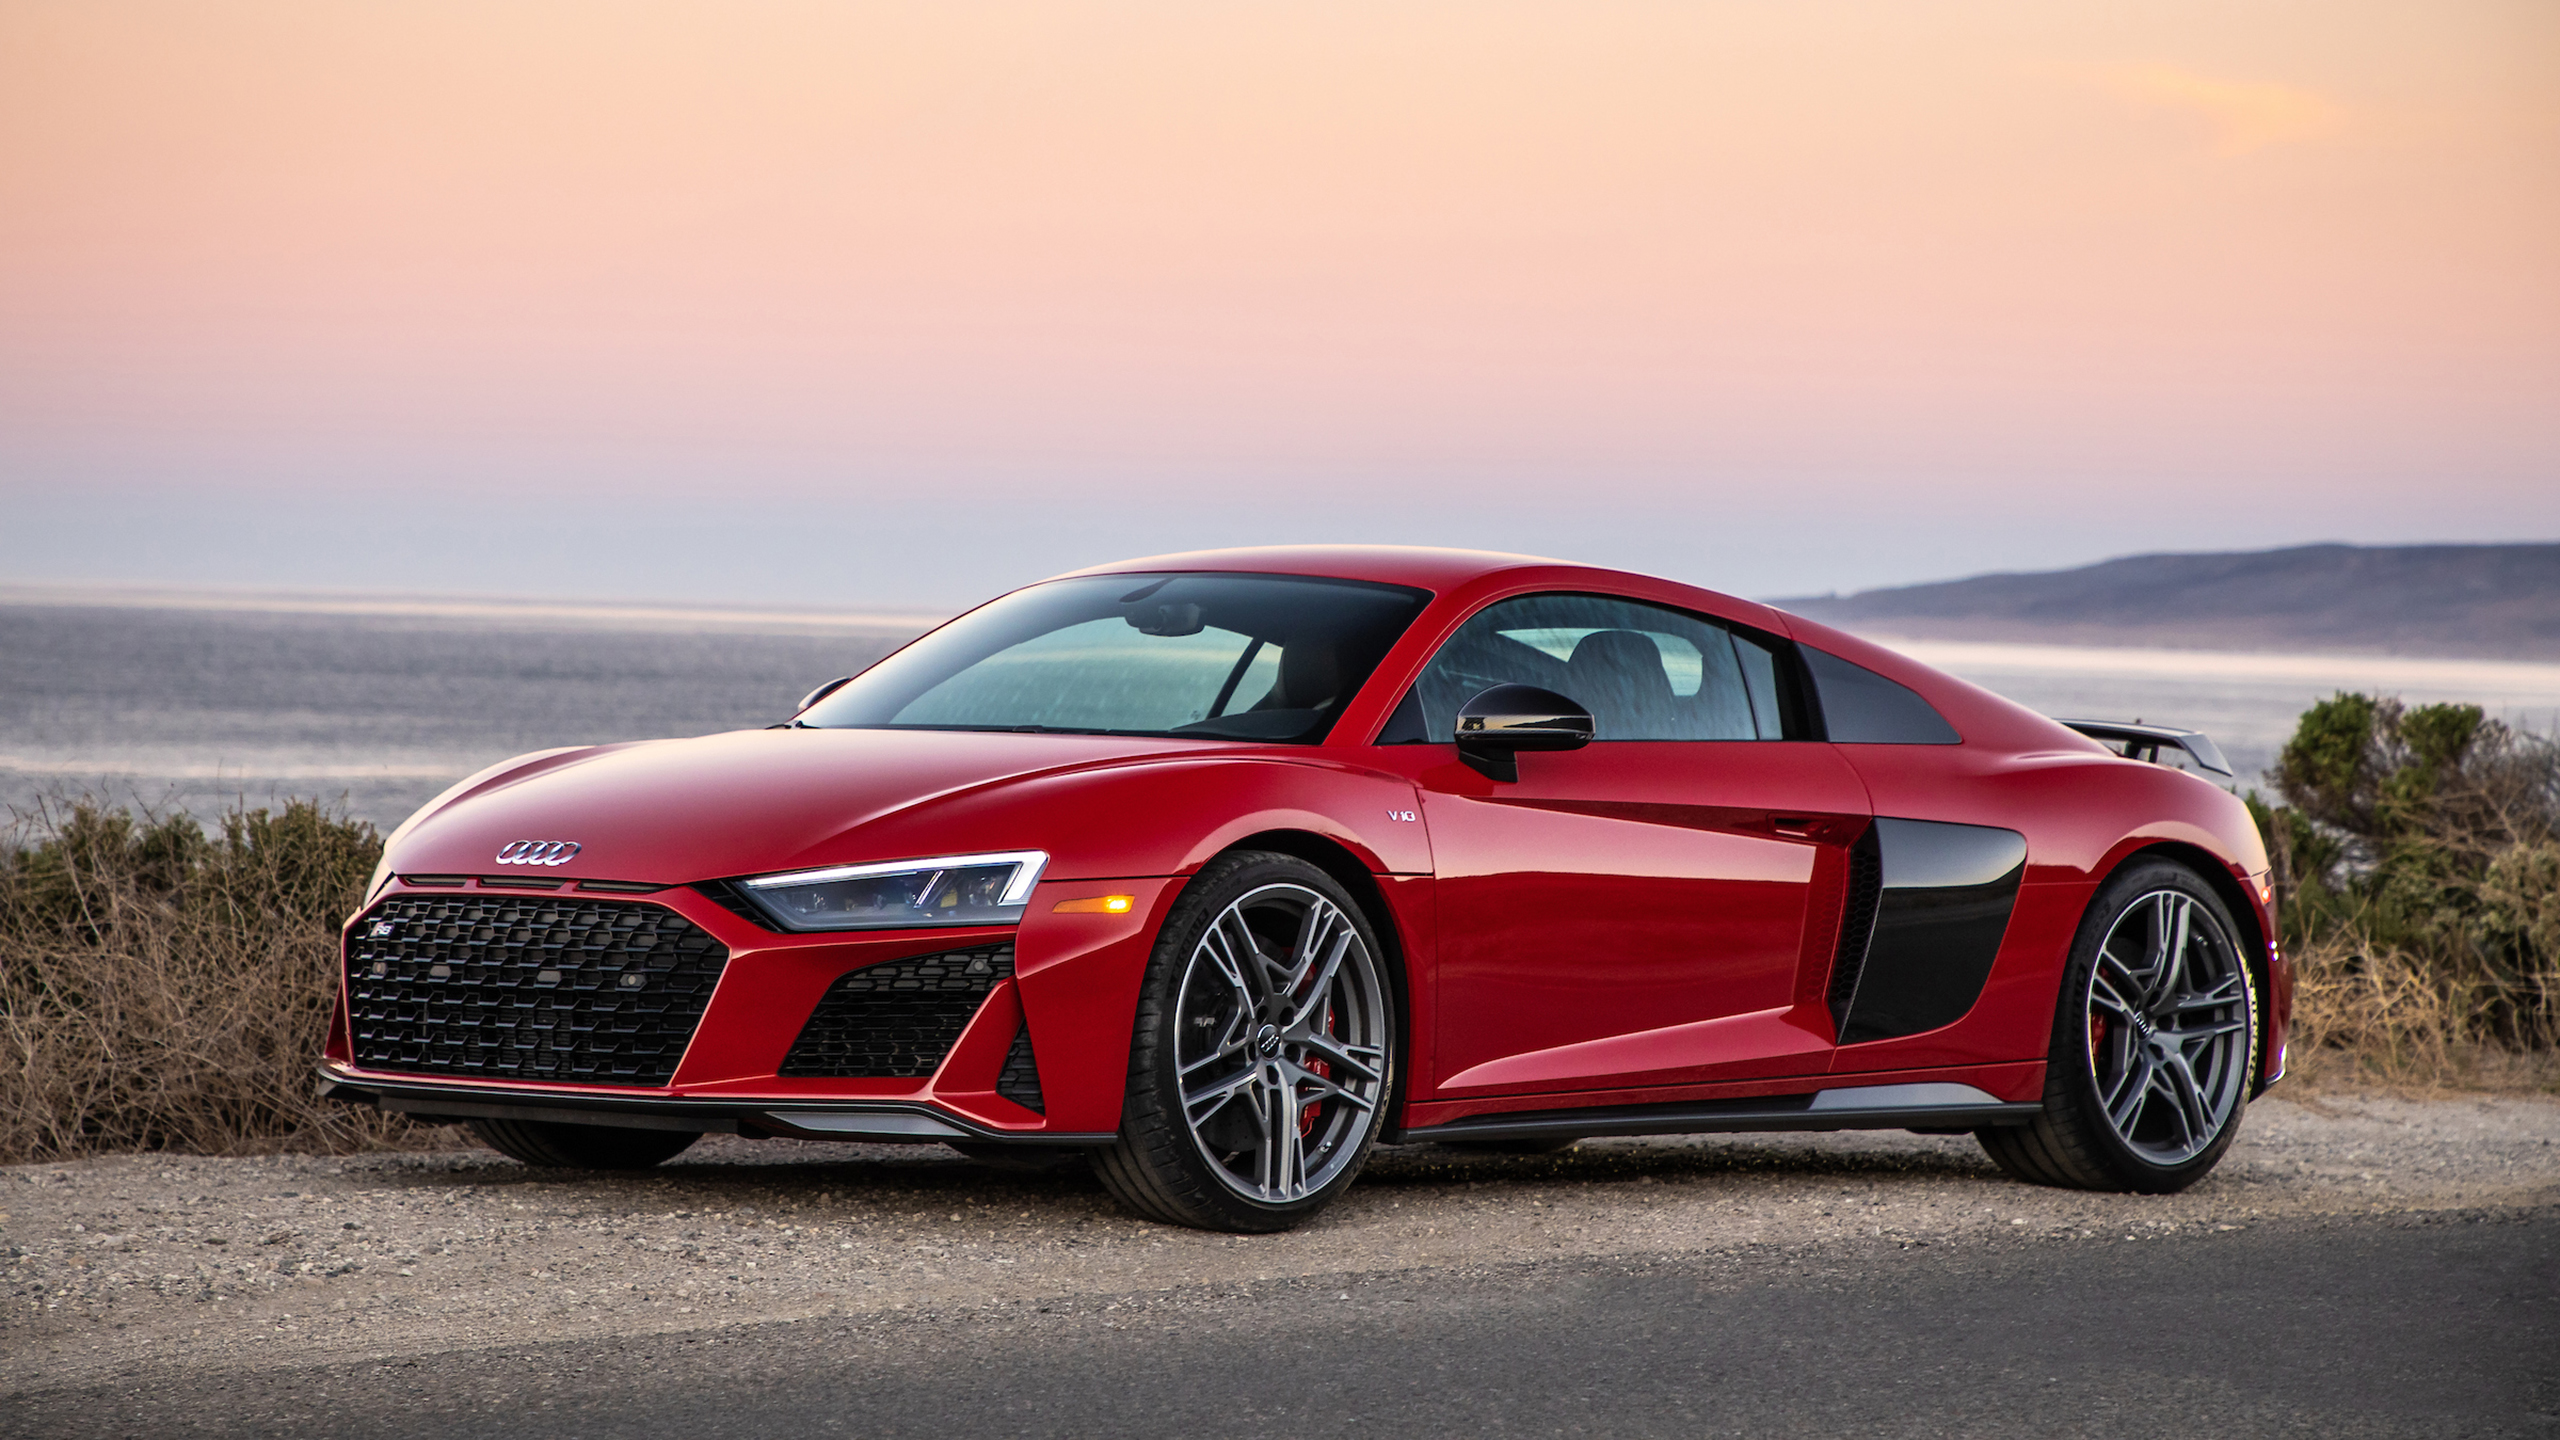 Audi R8 Wallpaper – Gives Your Car a Personalized Look